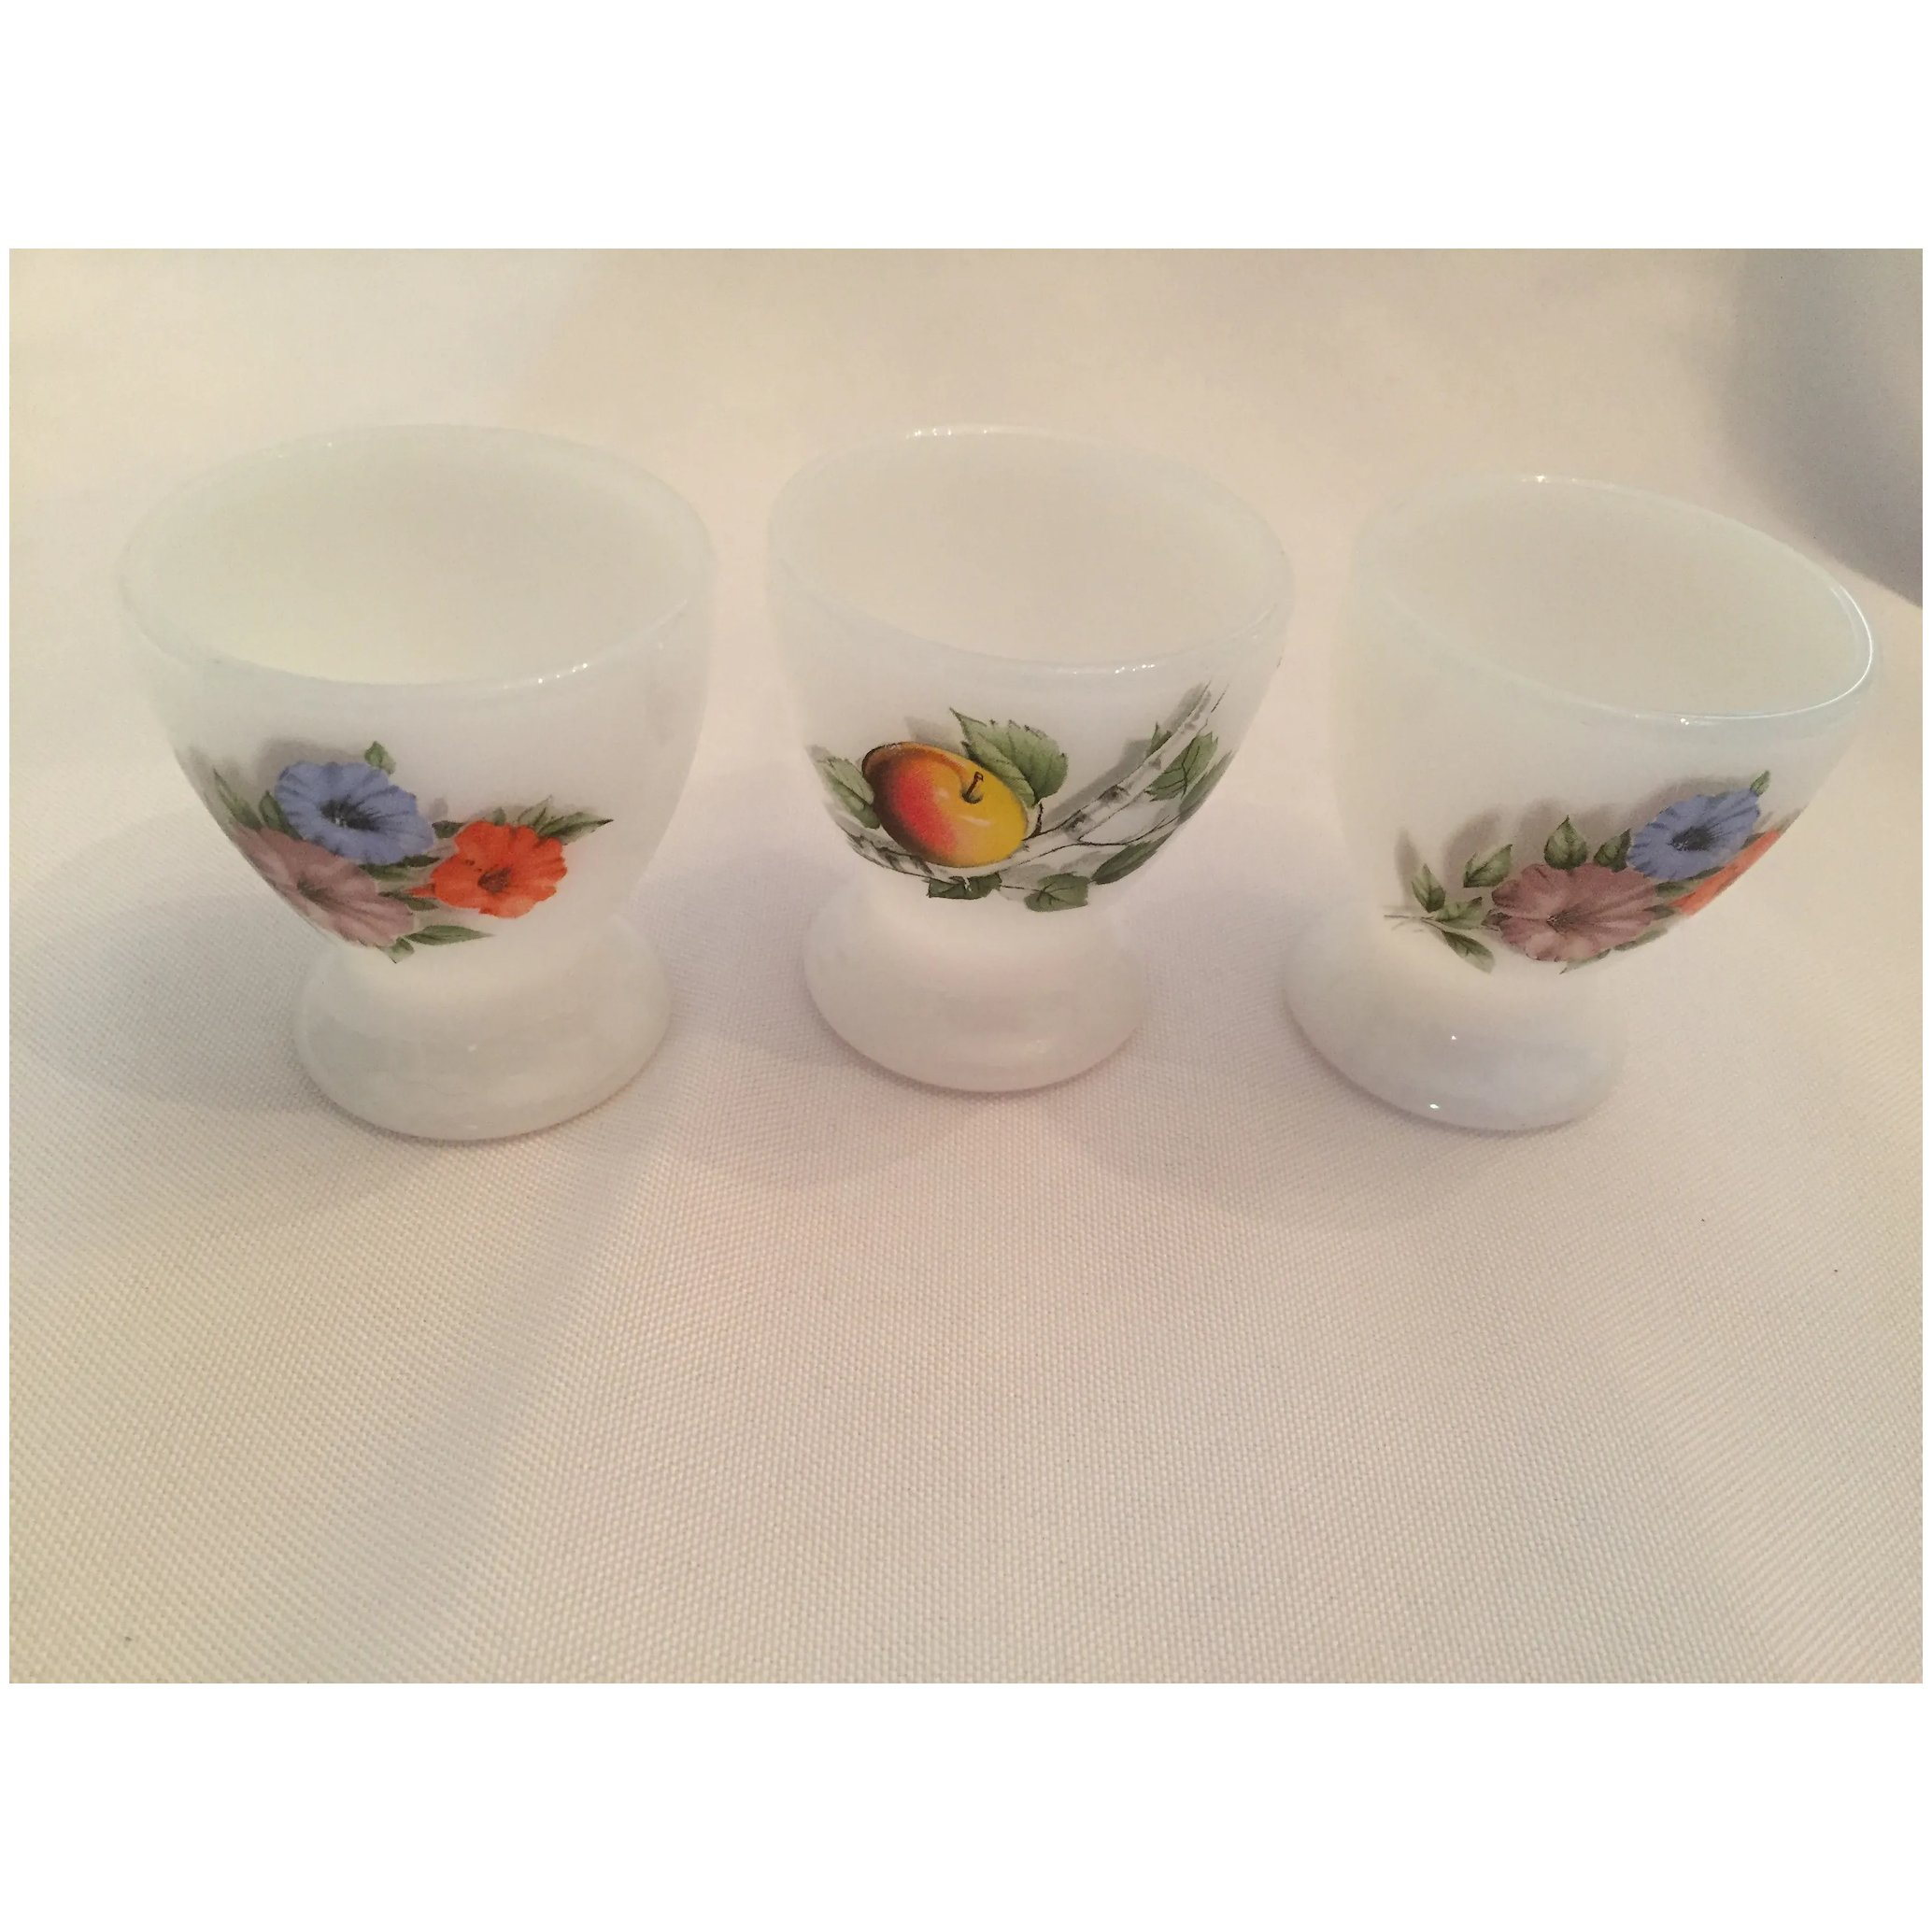 Three Vintage Milk Glass Egg Cups with Red Rose Design by Arcopal France 70s 19076